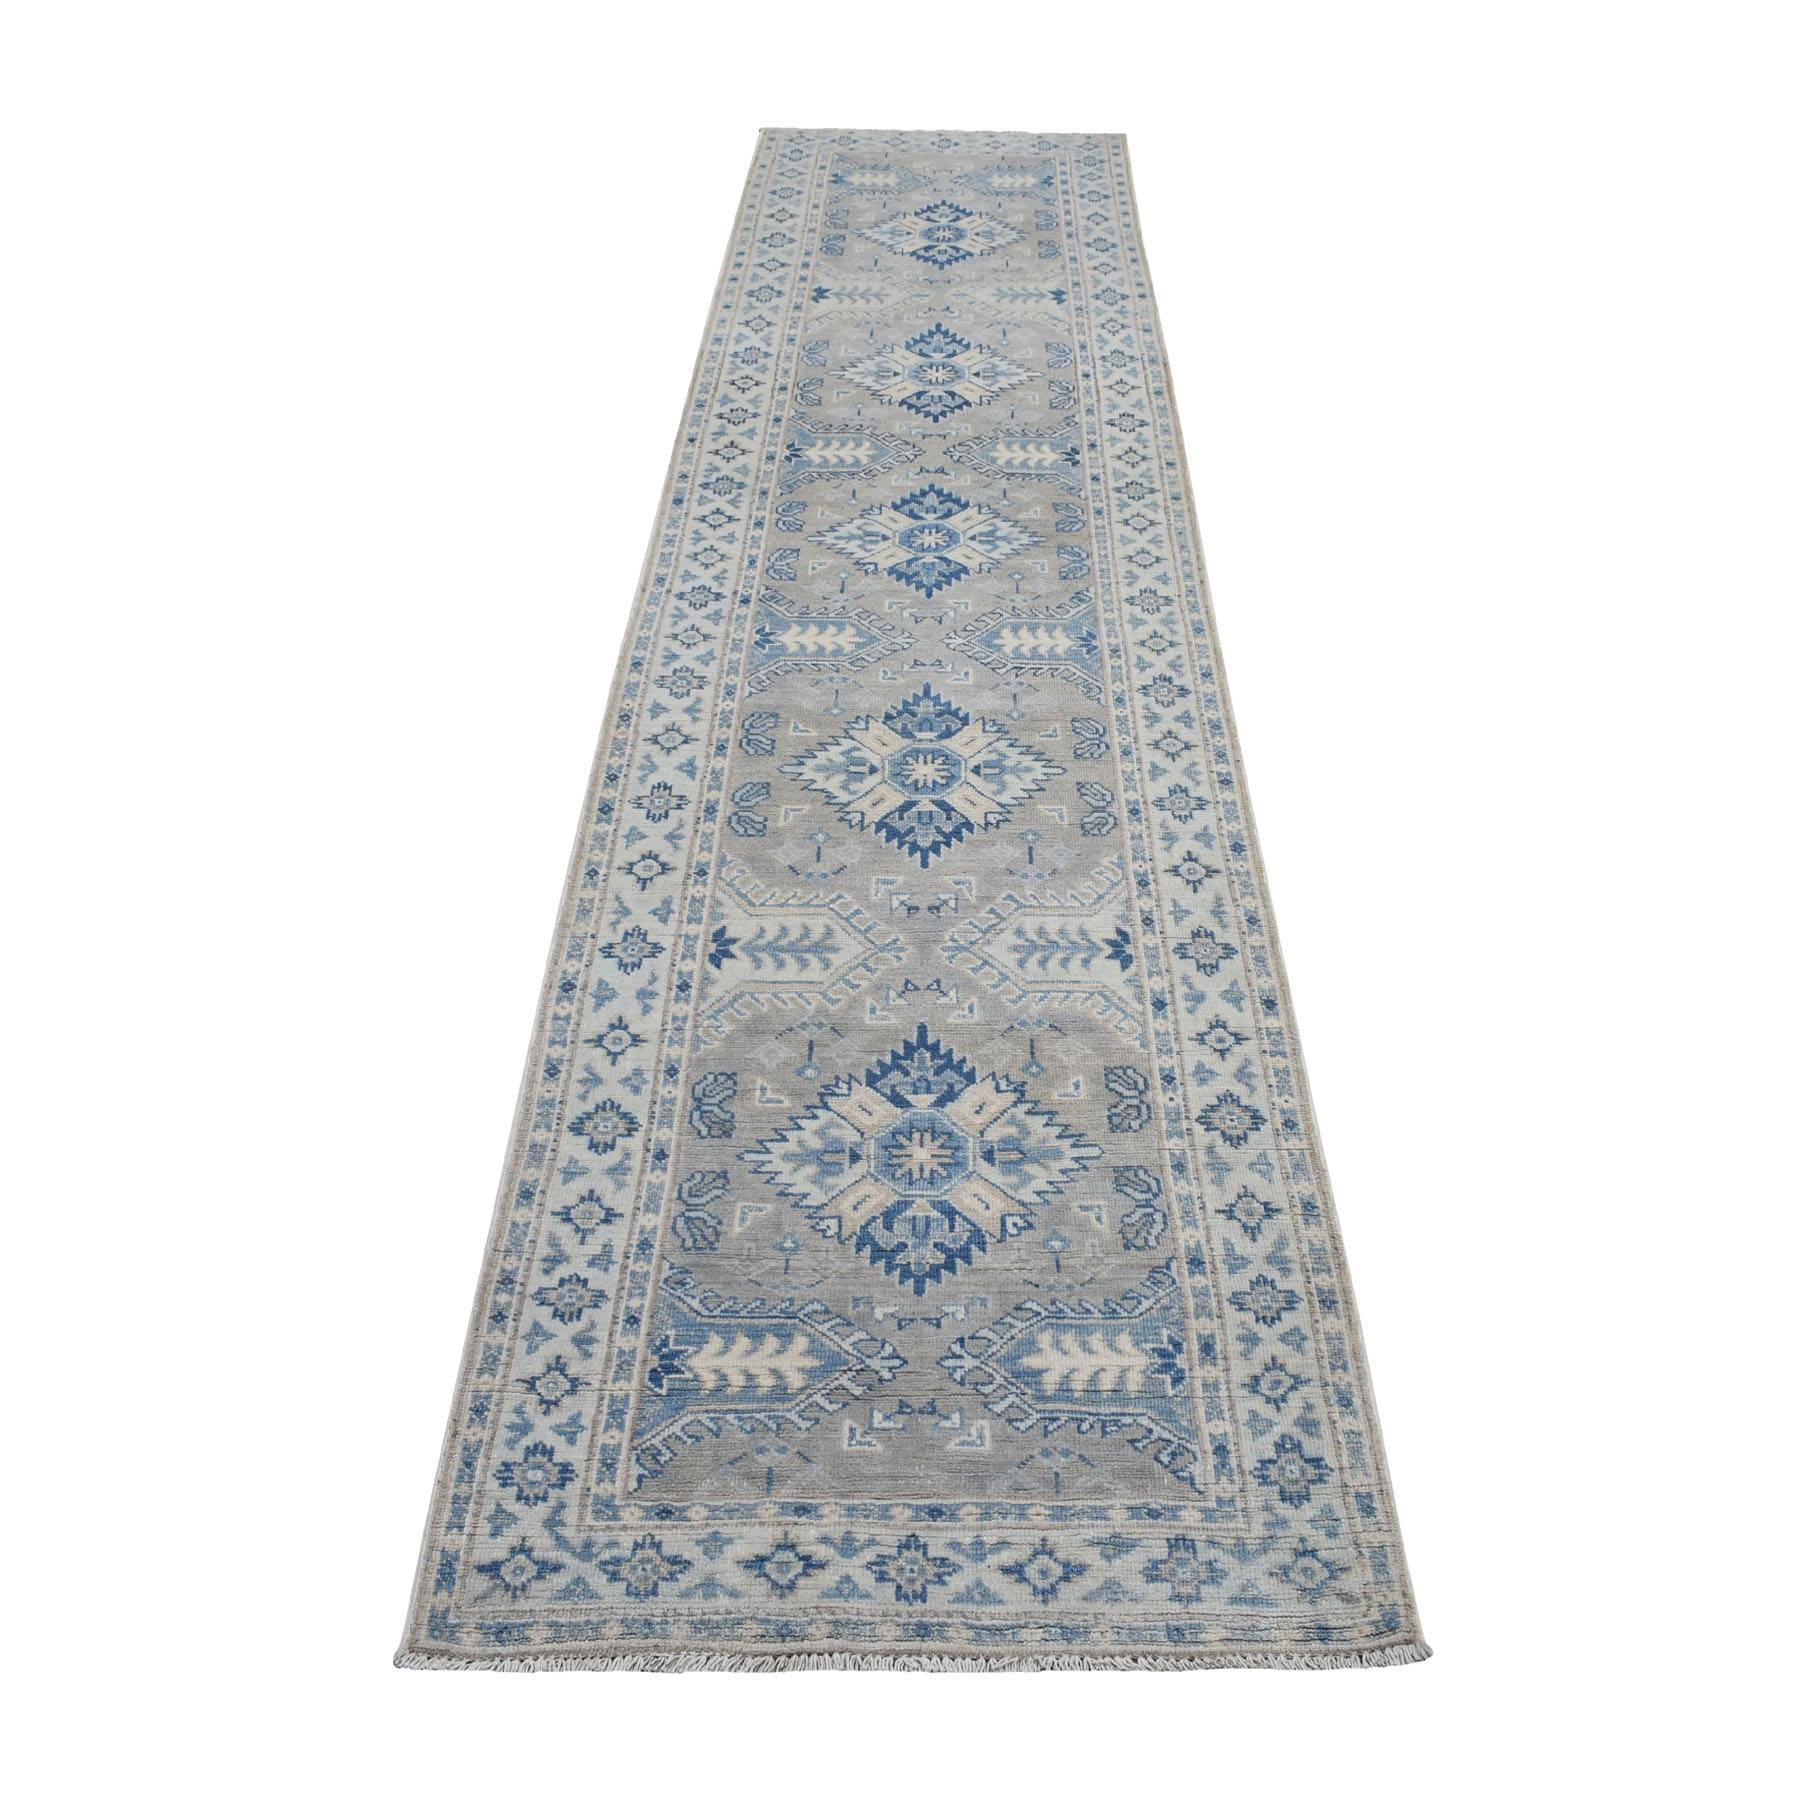 Vintage Look Kazak Geometric Design Gray Runner Pure Wool Hand Knotted Oriental